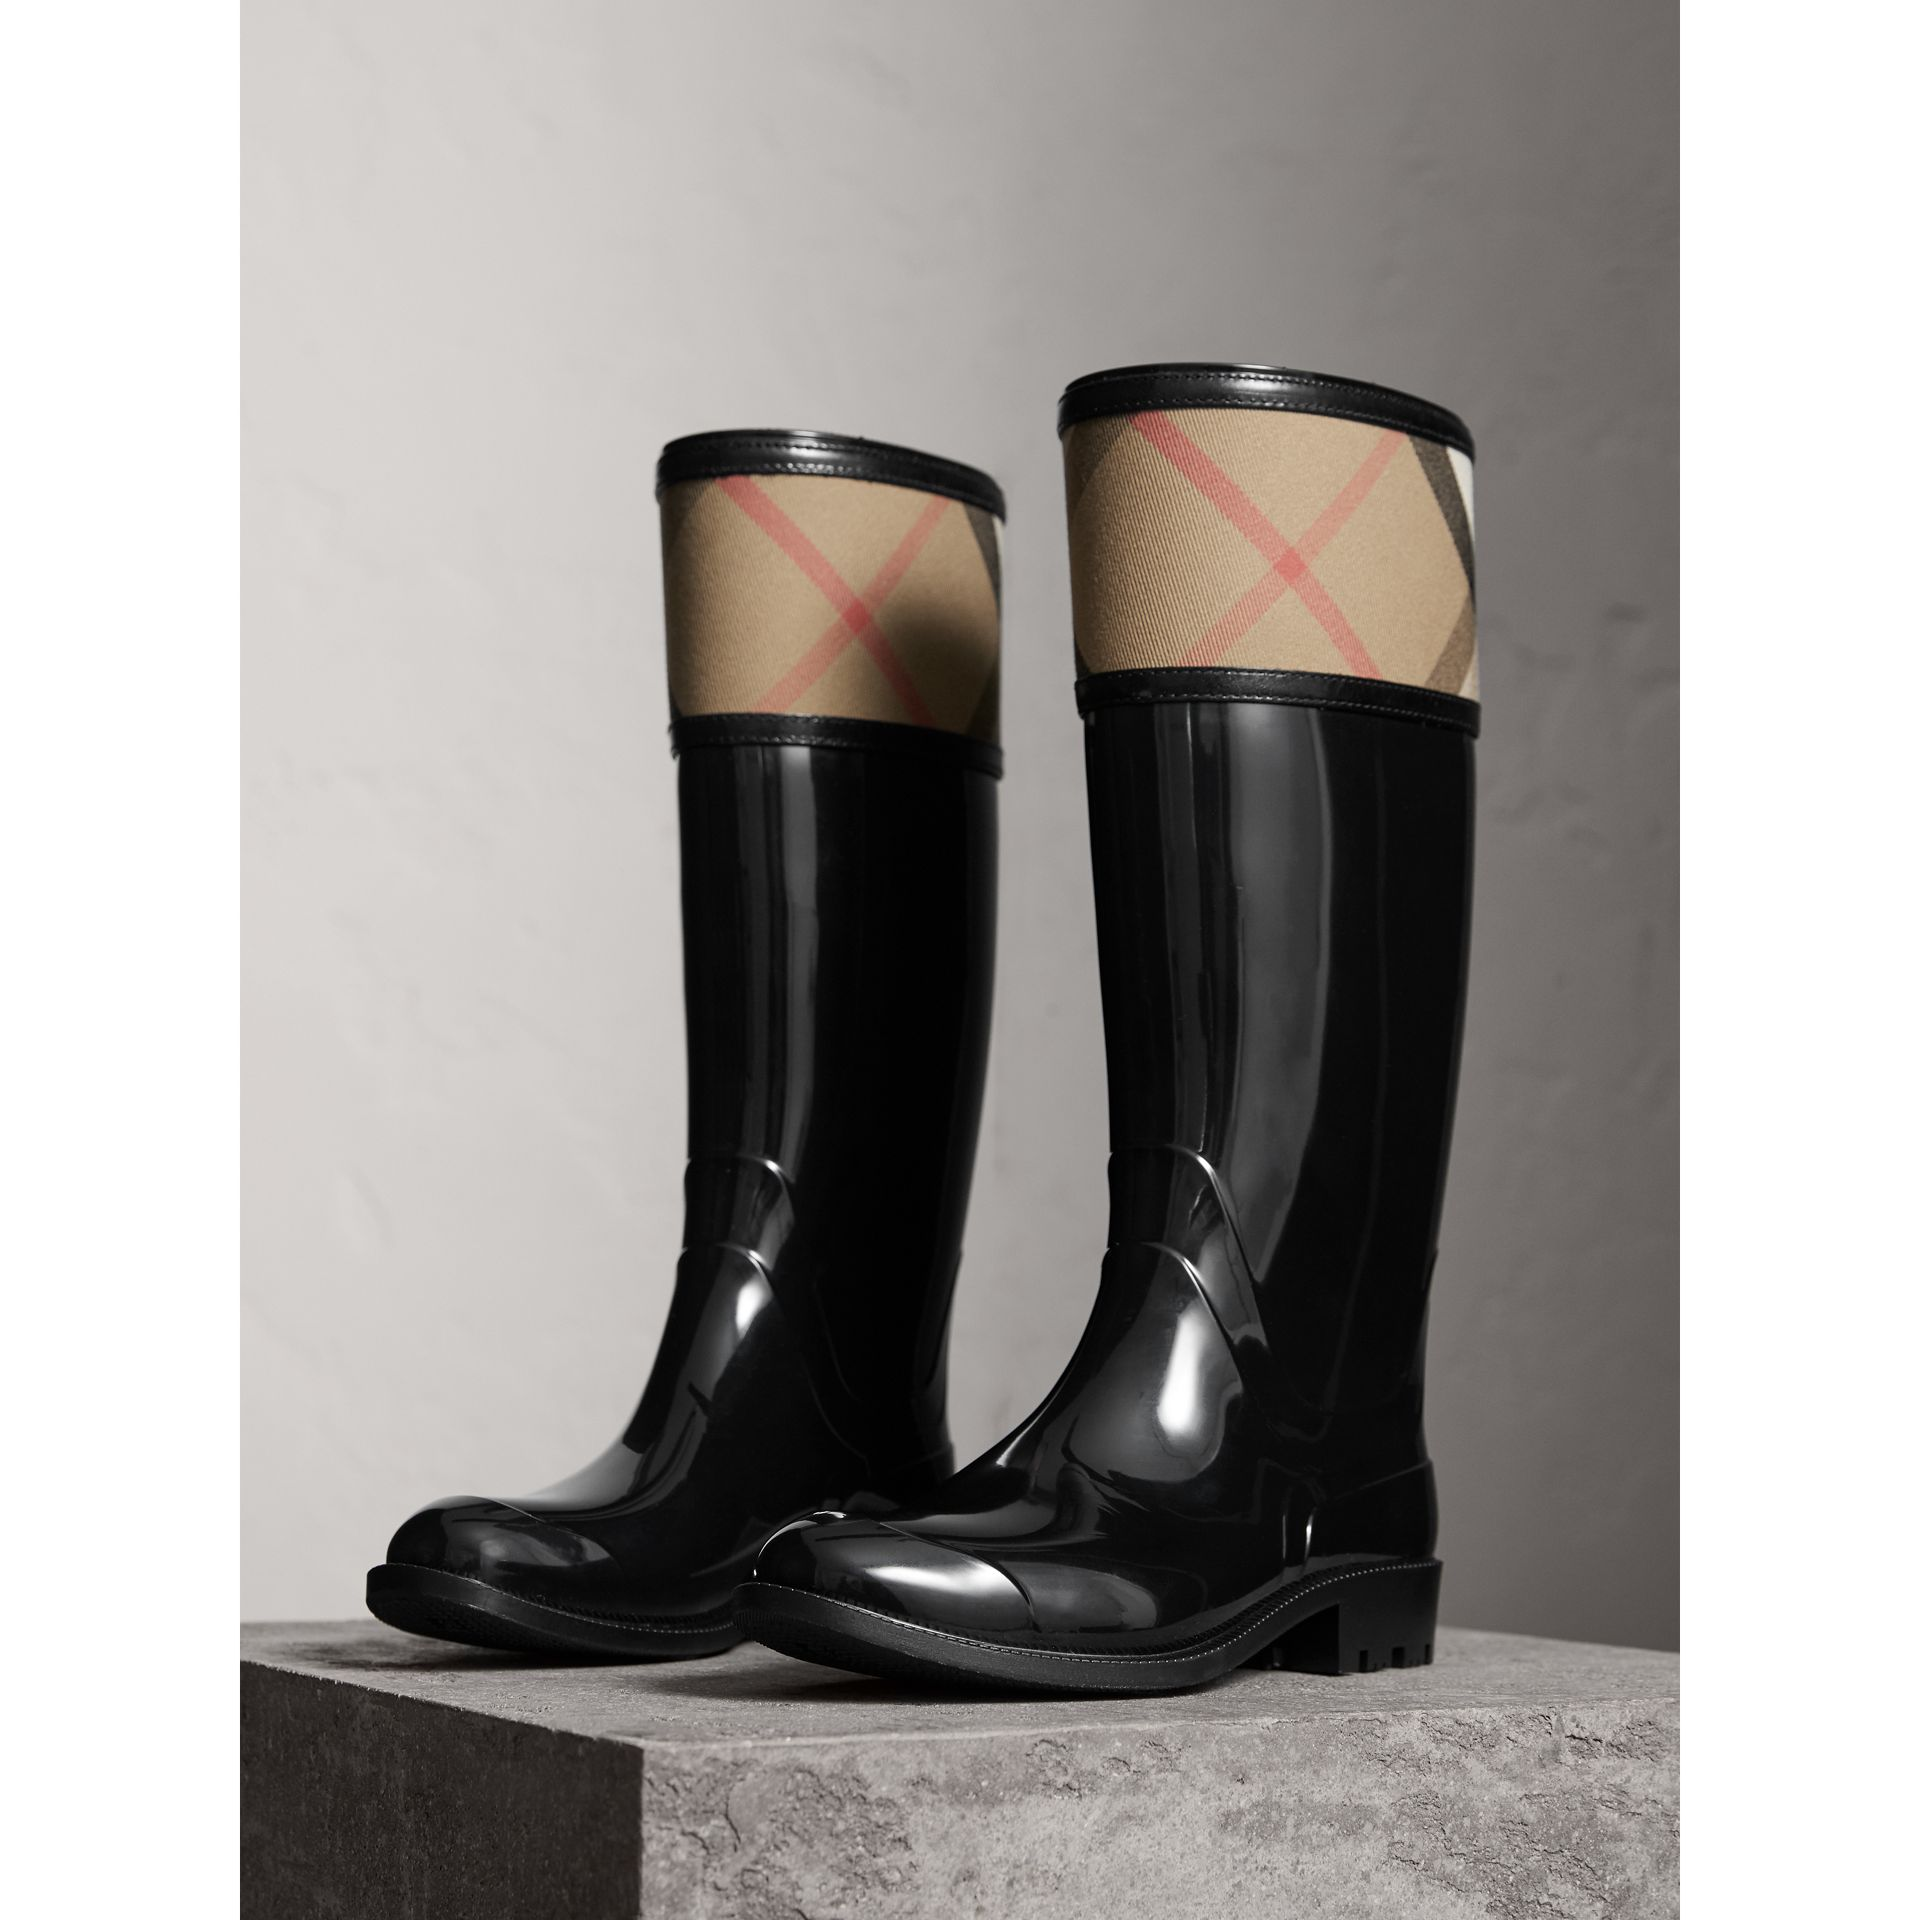 Regenstiefel in House Check (Schwarz) - Damen | Burberry - Galerie-Bild 4